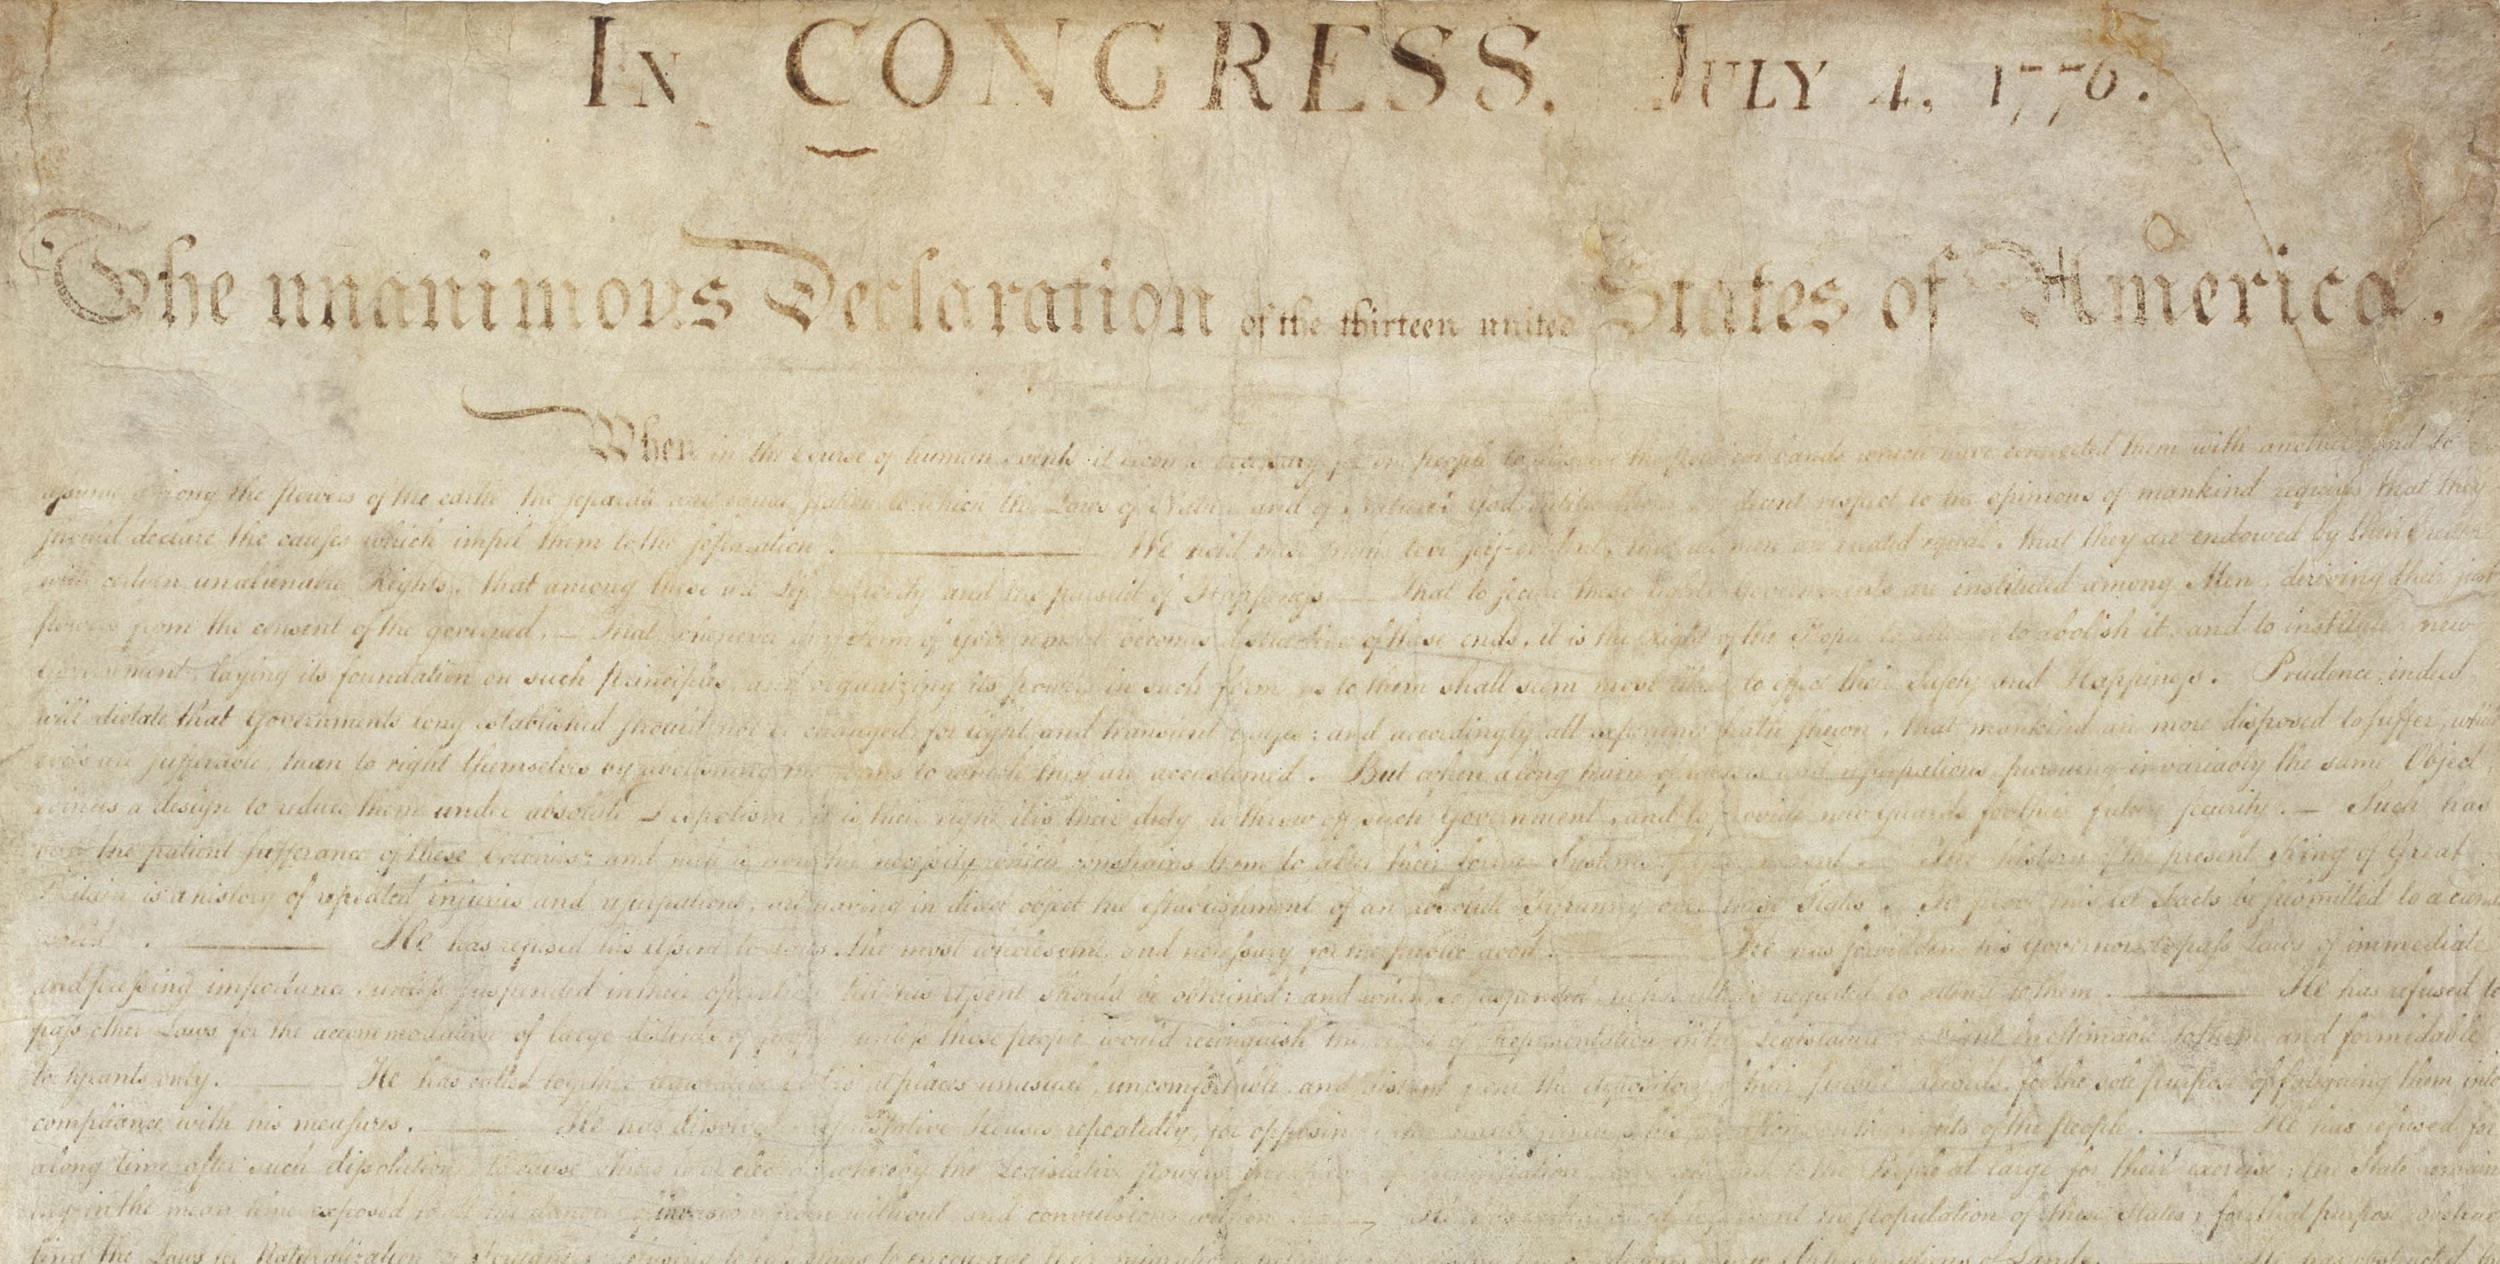 has america moved from the ideals of the declaration of independence Here's a hint - the ideals expressed in the us declaration of independence are primarily concentrated in the second paragraph and in the list of injuries and usurpations the colonists asserted the british king had committed.